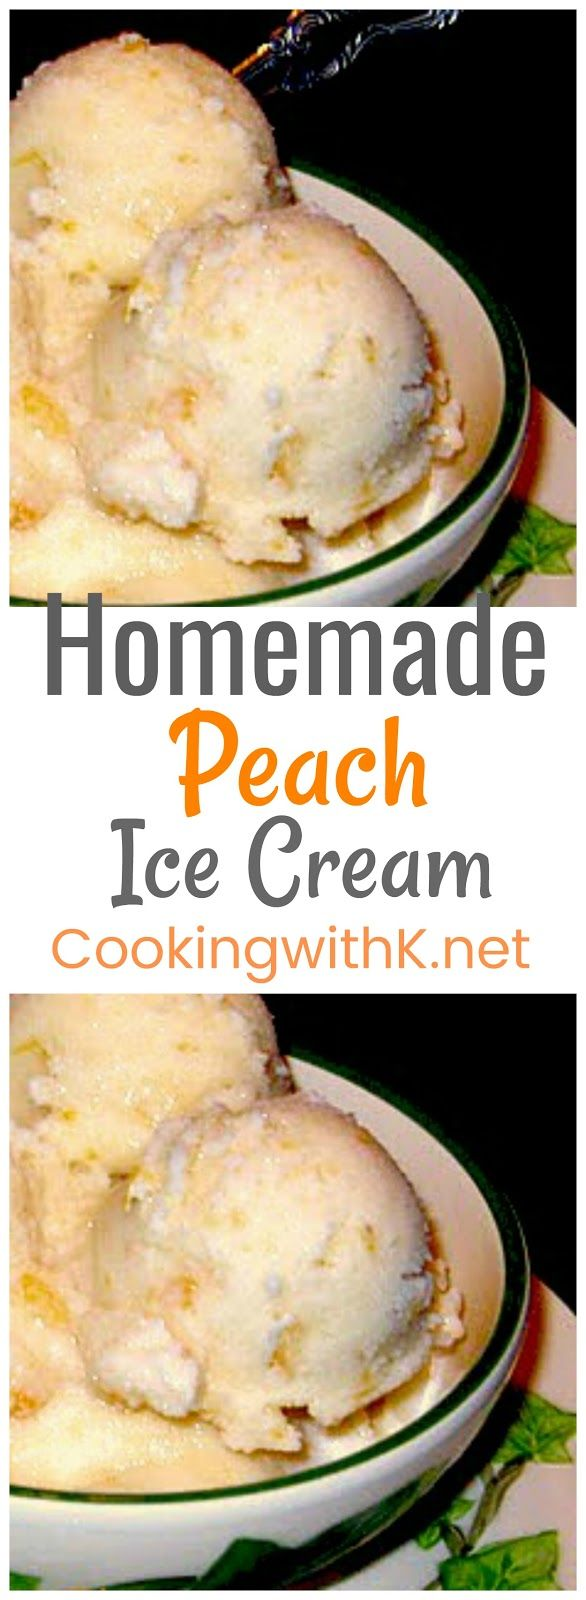 Homemade Peach Ice Cream, bits of chopped peaches swirled in a rich homemade vanilla ice cream mixture made with sweetened condensed milk. Now you know why it is a family favorite.